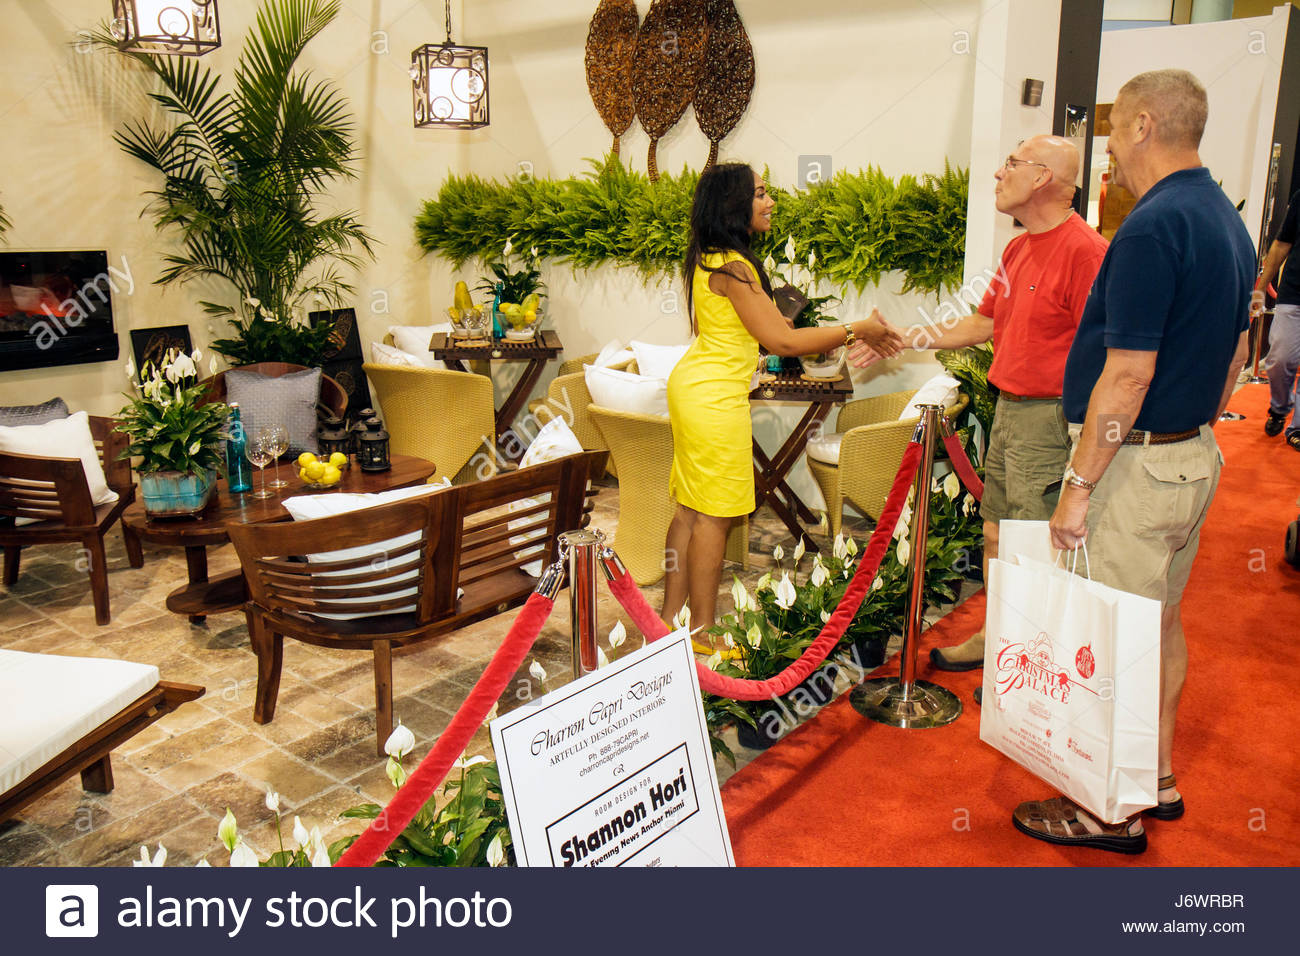 Miami Beach Miami Florida Beach Convention Center Home Design And U0026  Remodeling Show Buyers Sellers Exhibitors Vendors Shopping D